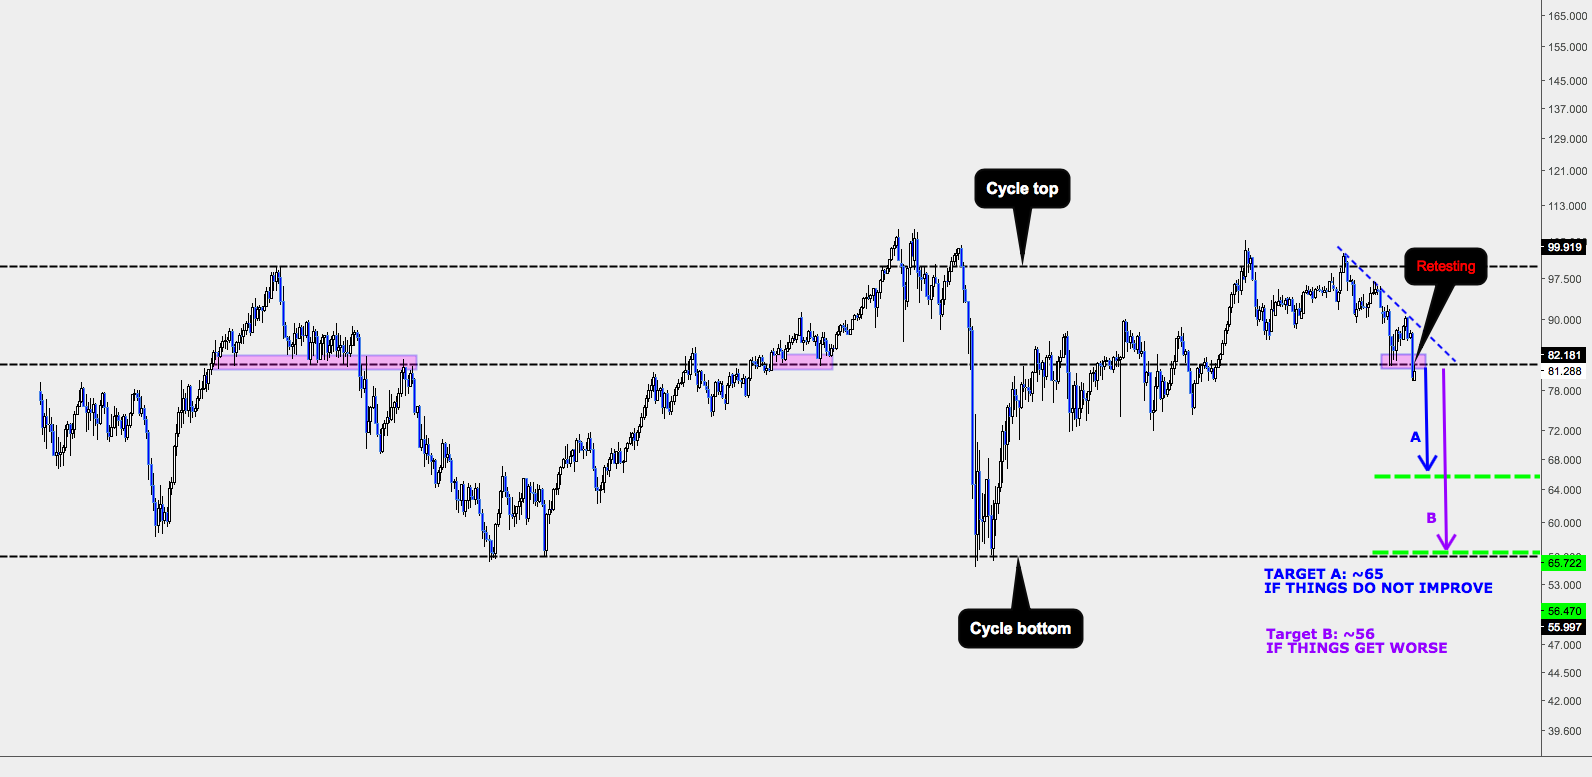 AUDJPY IS A PHENOMENAL LONG TERM SHORT OPPORTUNITY